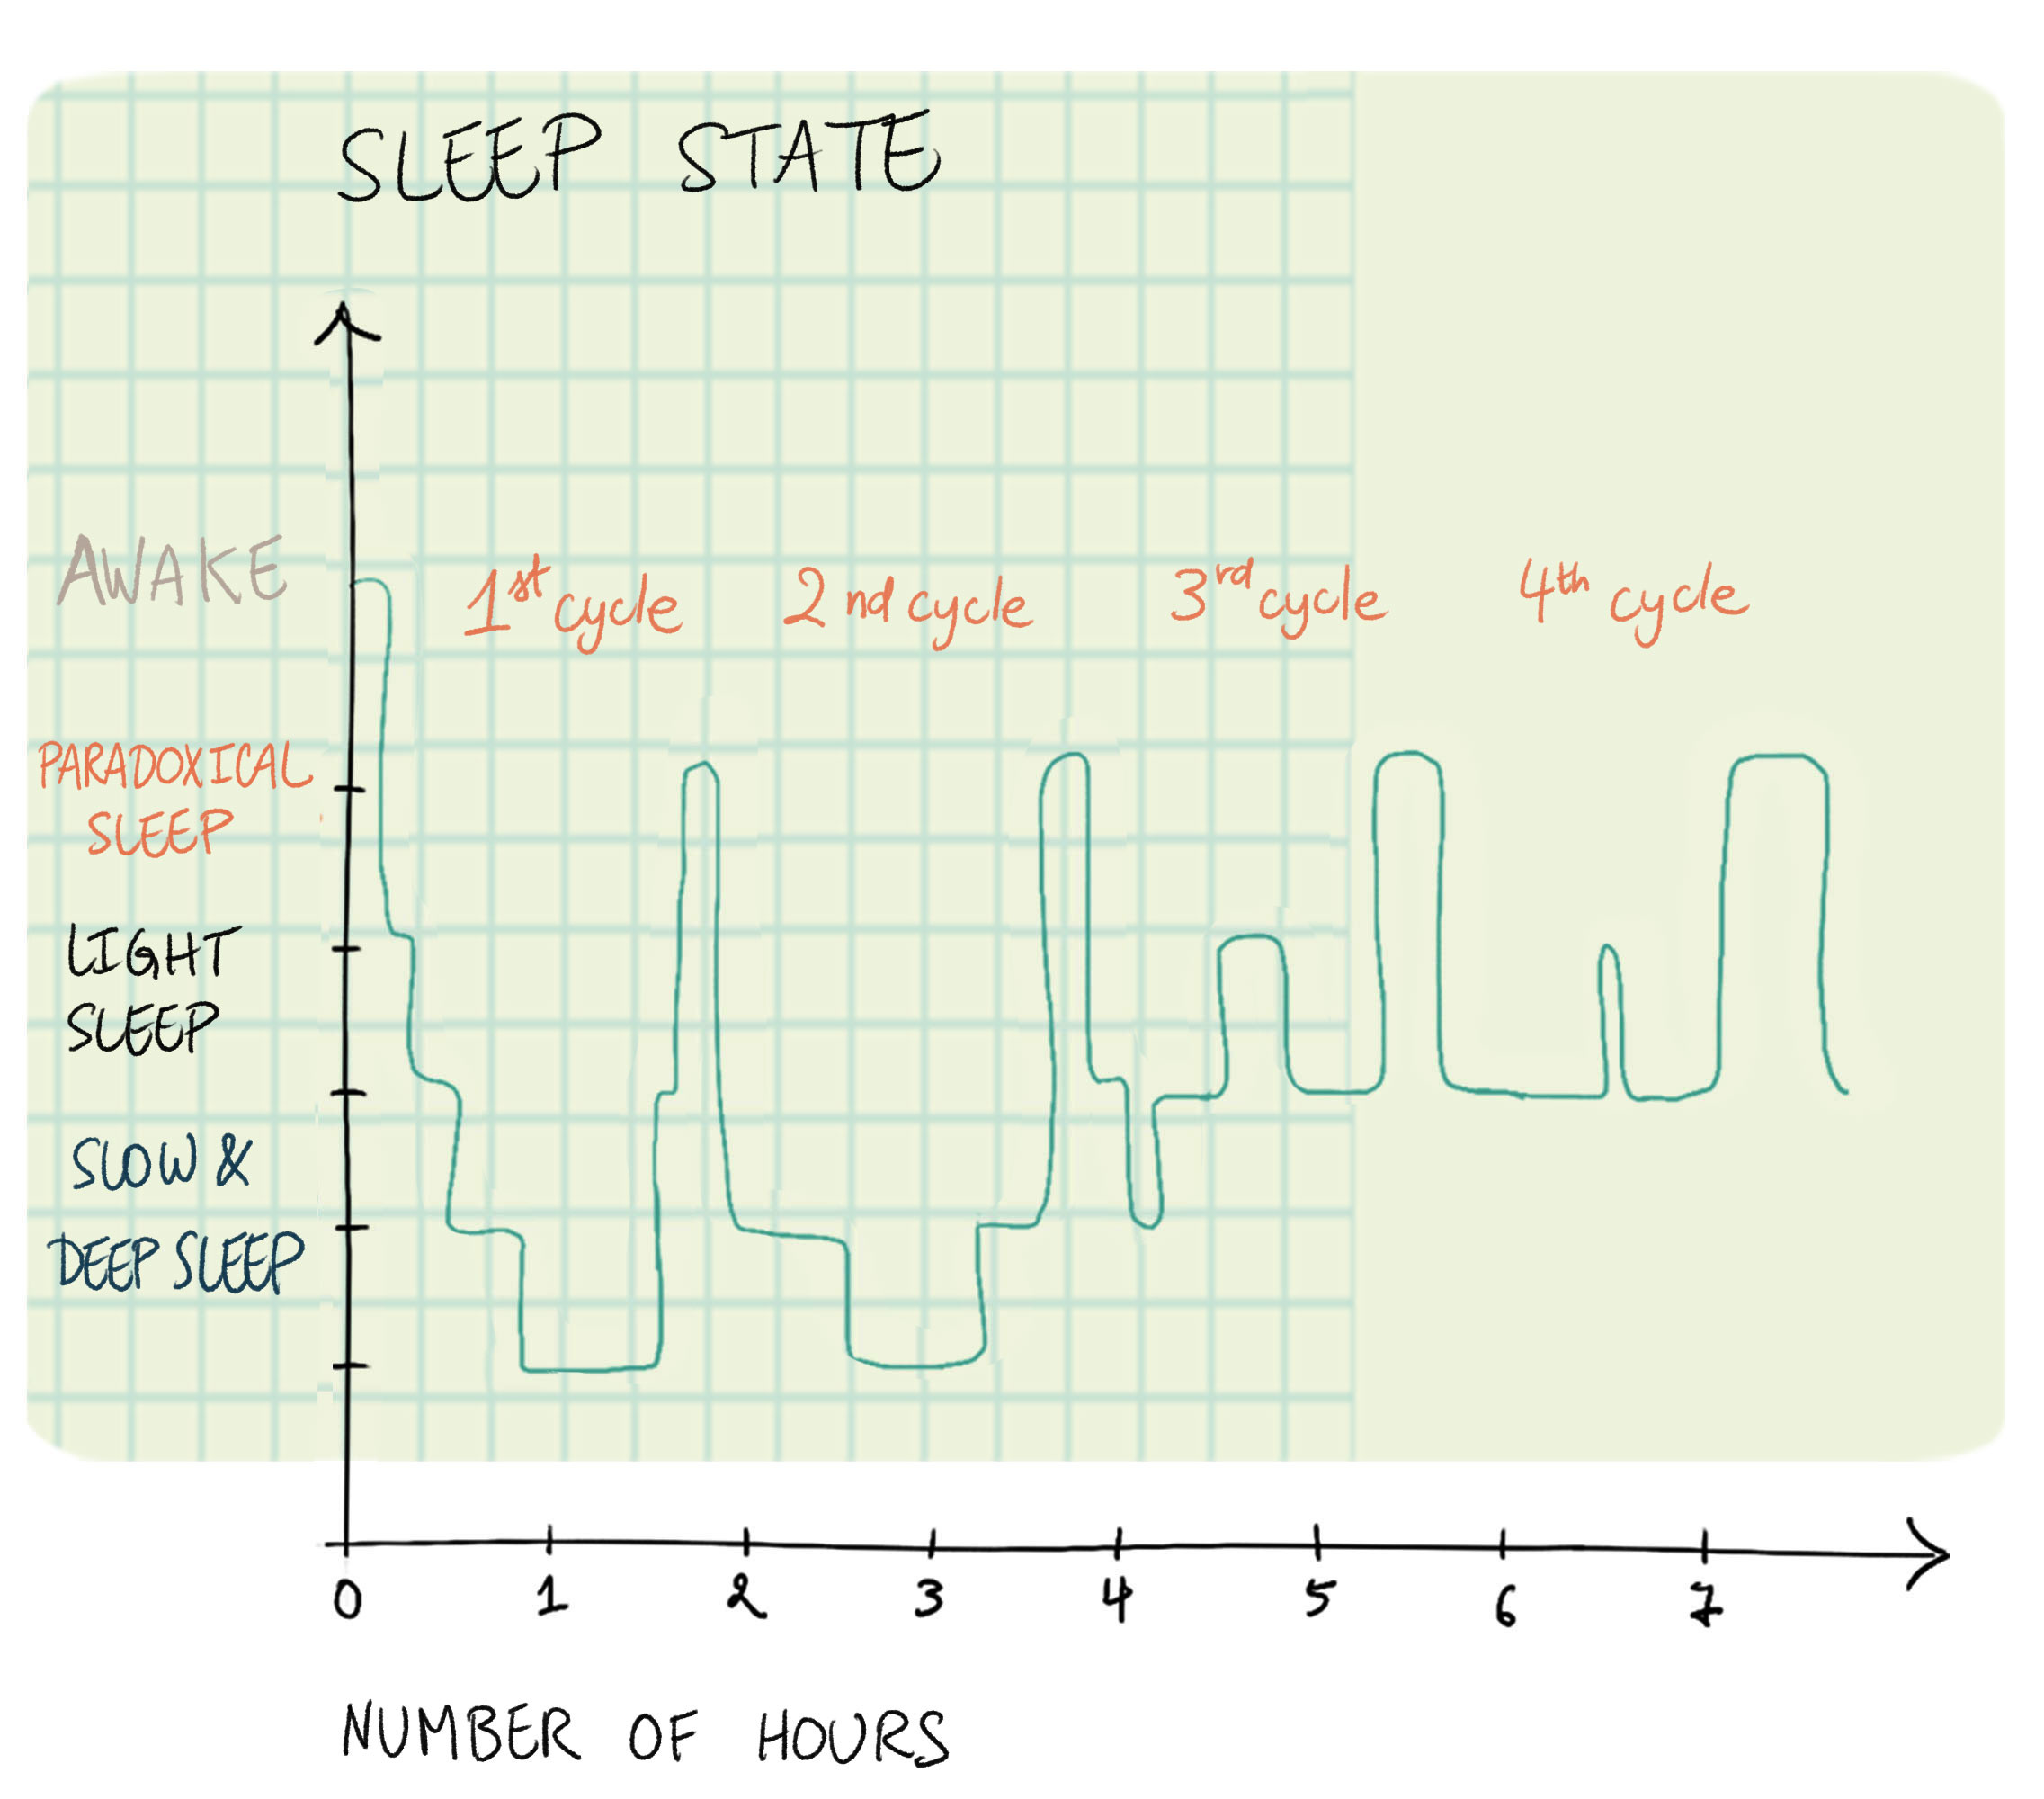 if you fall asleep easily, you have a 50% chance of thinking you stayed  awake during this phase  if you have a hard time falling asleep, it's 80%